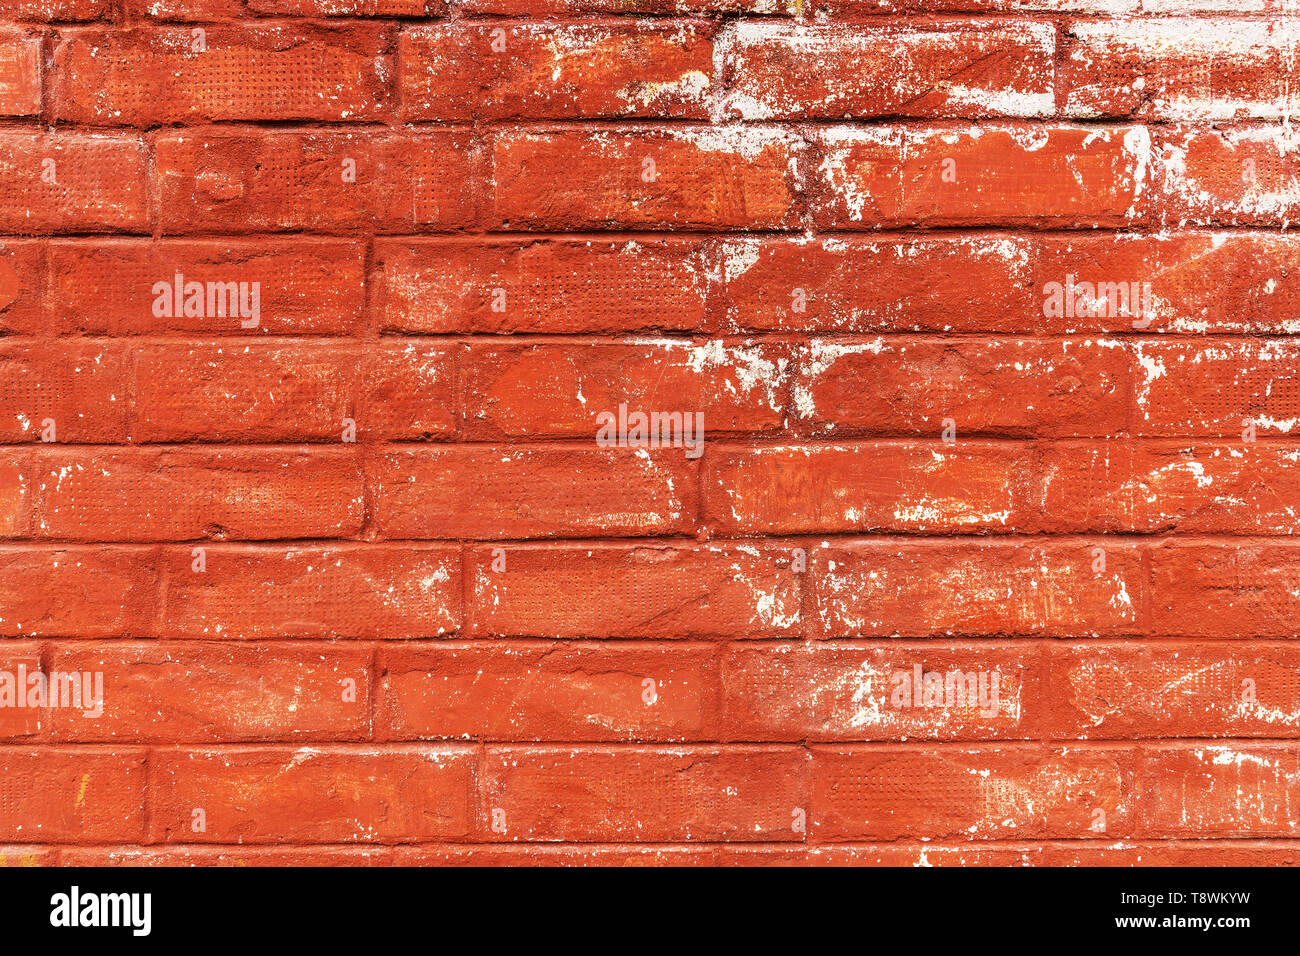 Scratched Red Brick Wall Texture Grunge Urban Patterns Stock